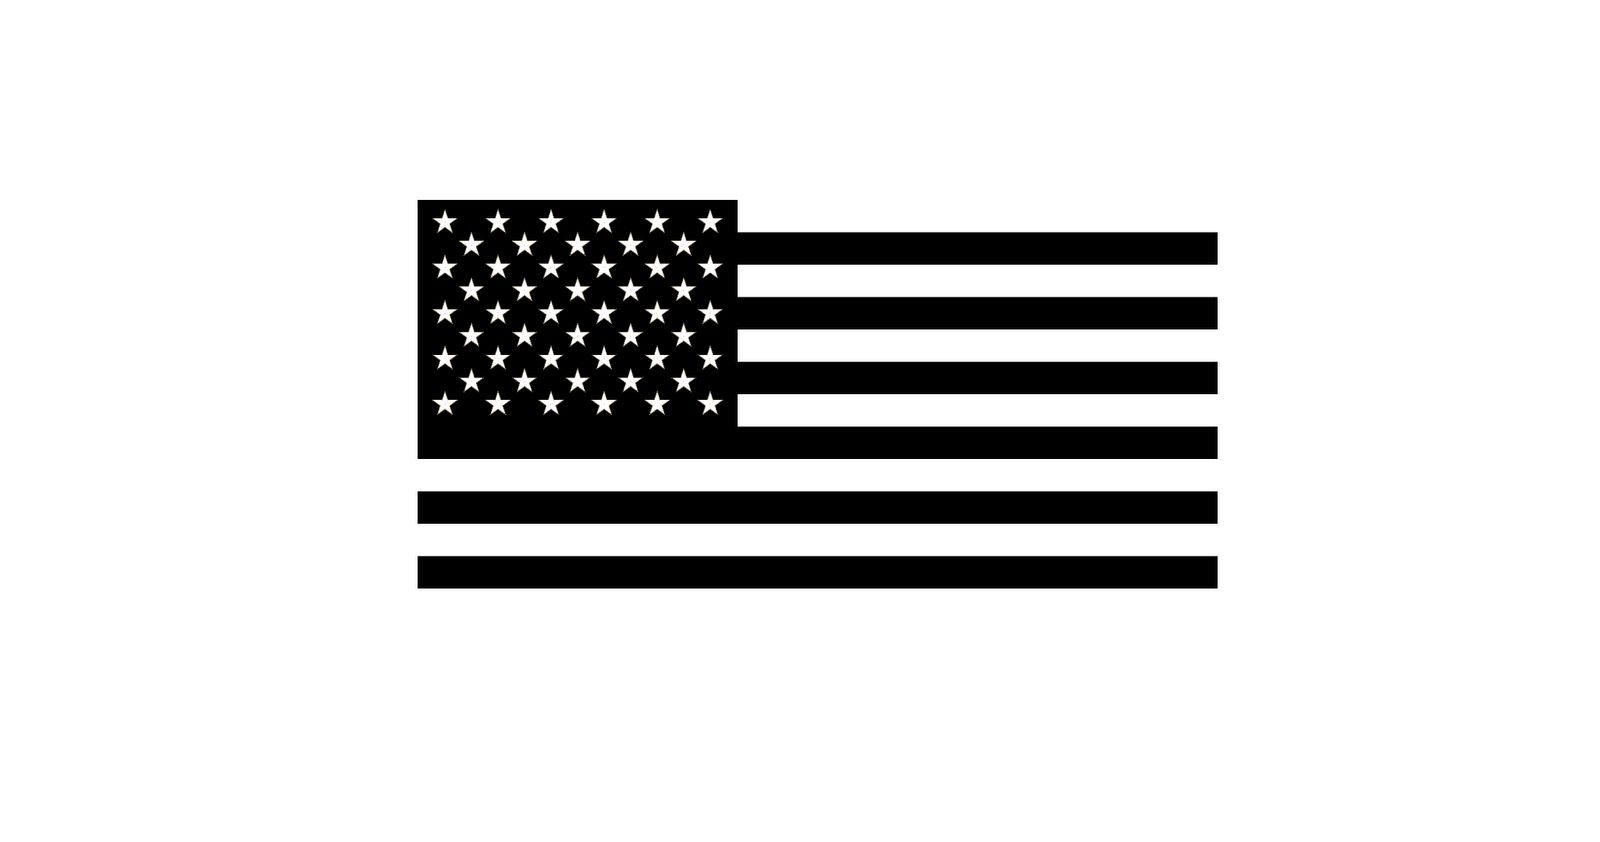 47+ Flag clipart black and white free information